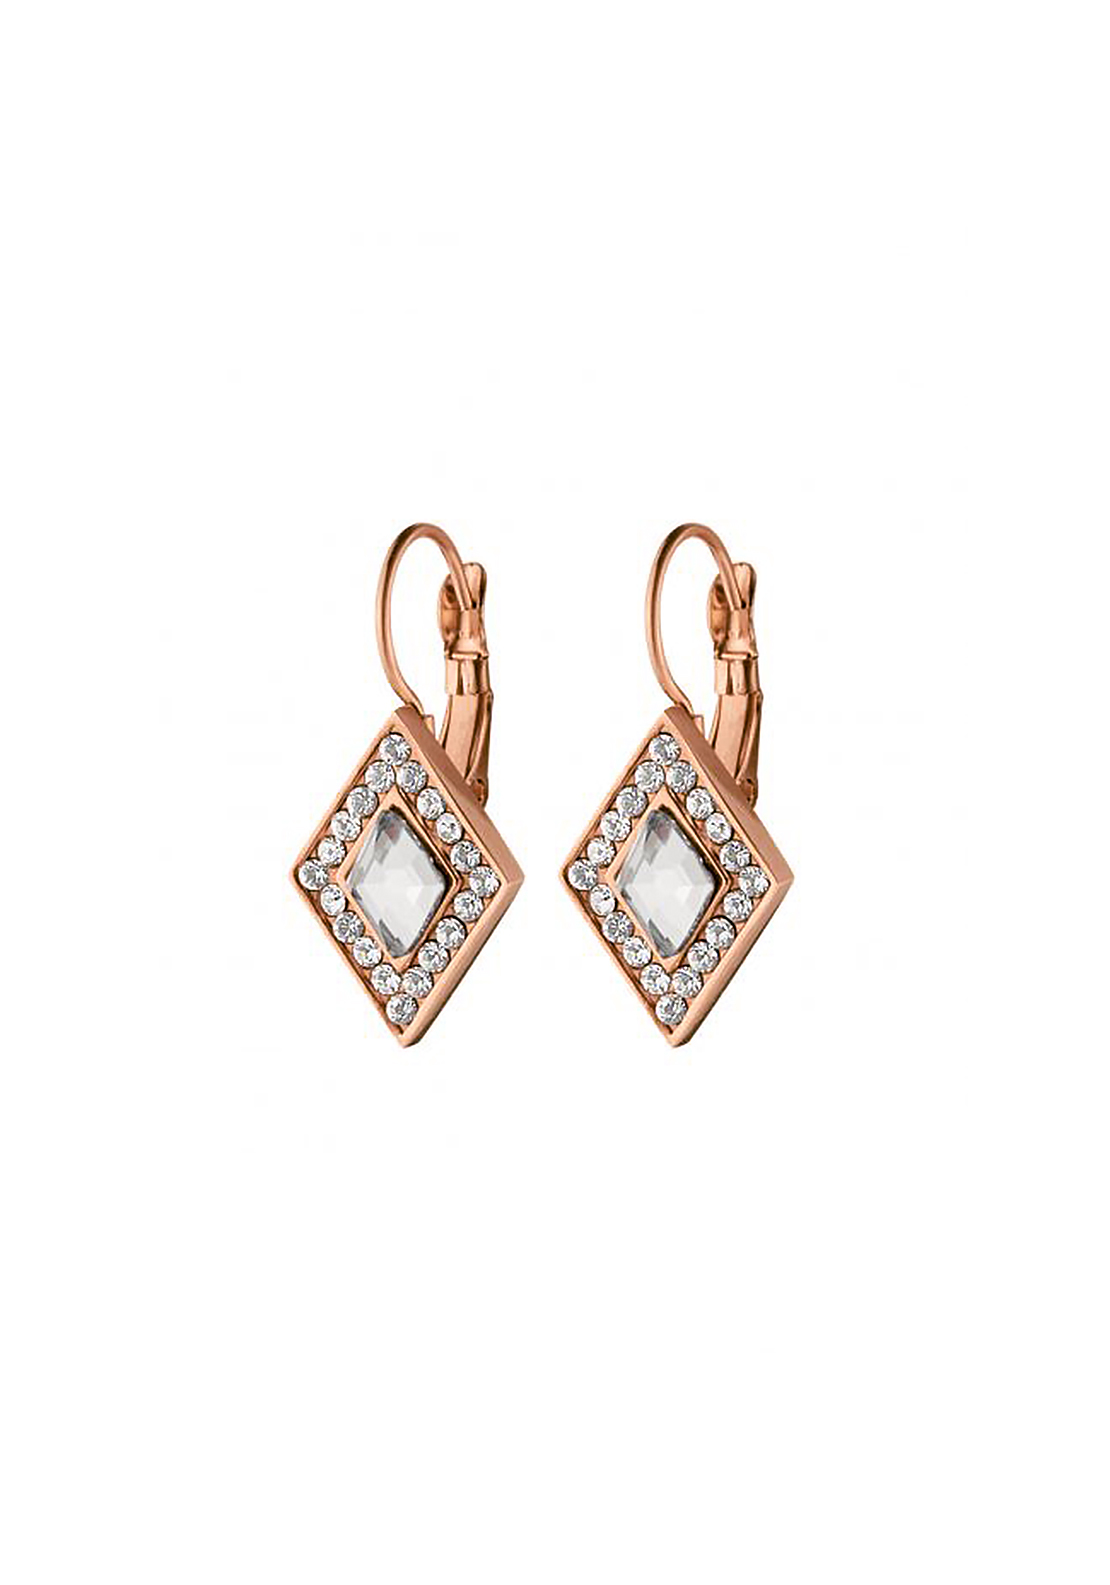 Dyrberg Kern Doha Cystal French Hook Earrings, Rose Gold